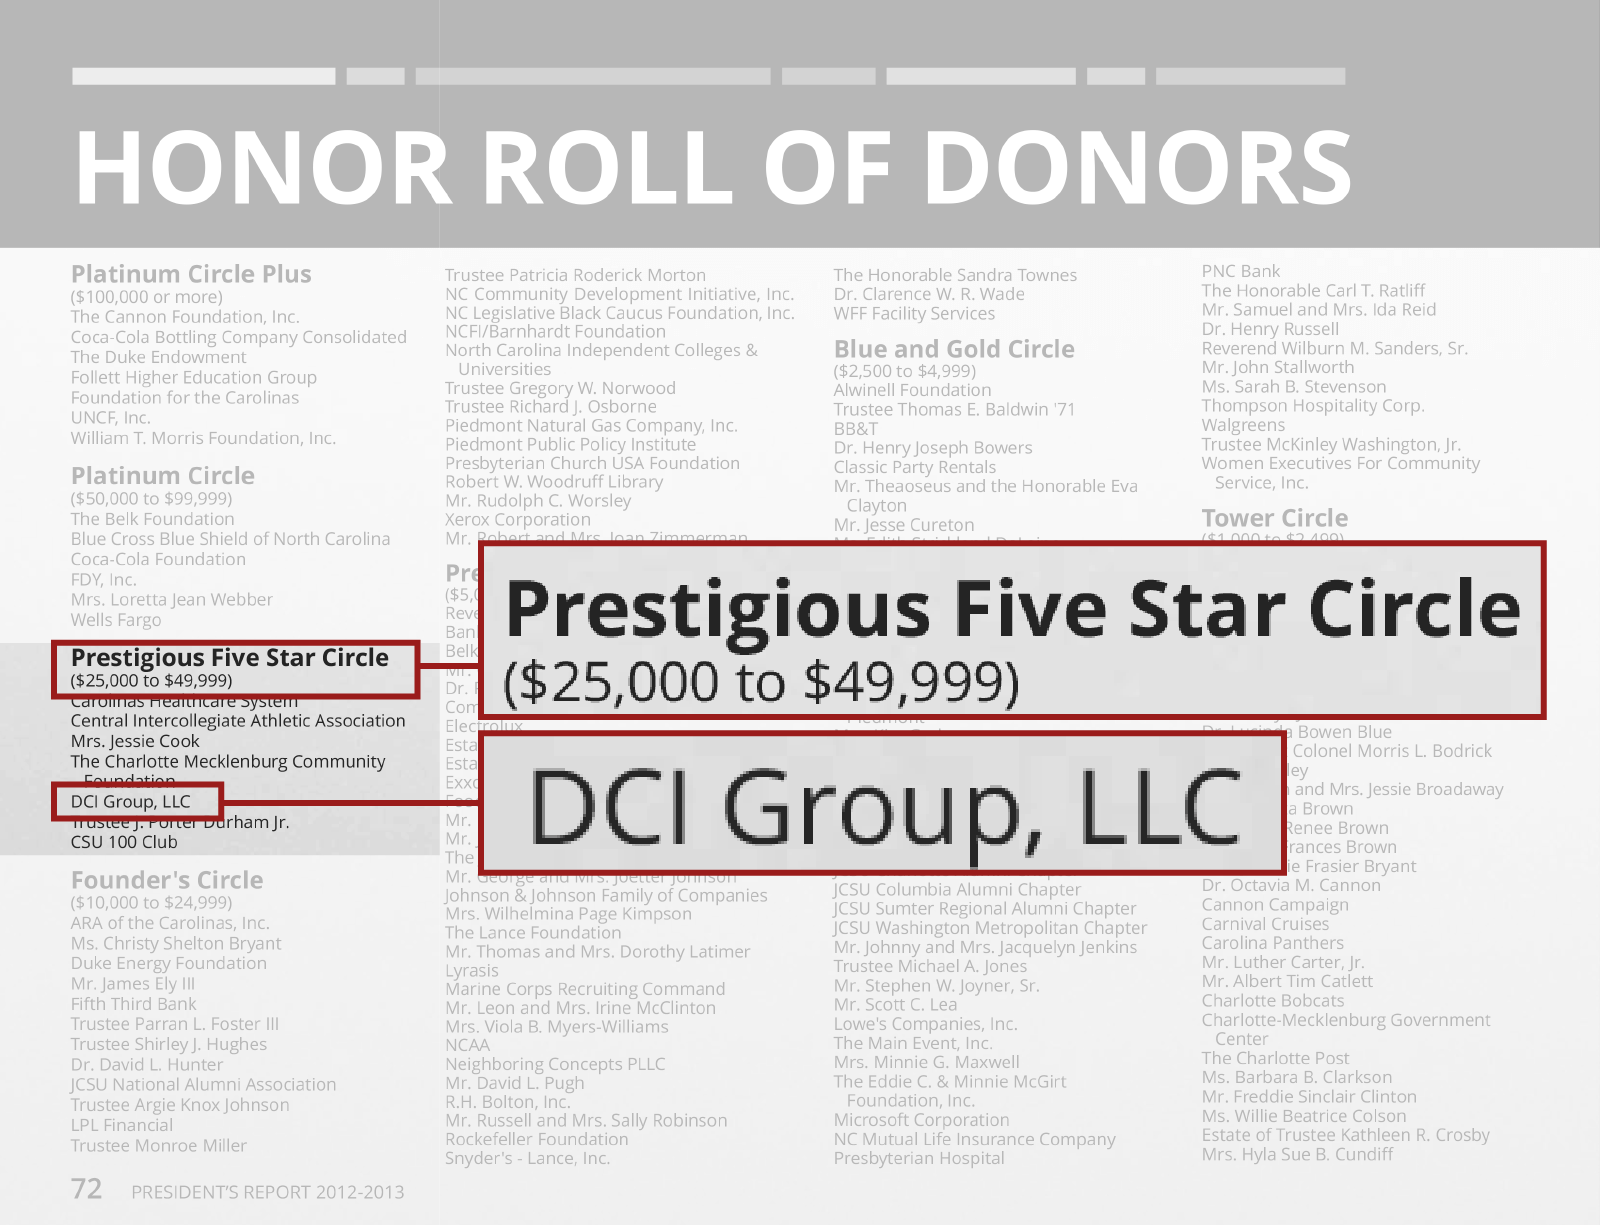 Image of donor page from Johnson C. Smith University President's Report, 2012–2013, showing DCI Group, LCC in the Prestigious Five Star Circle donor group